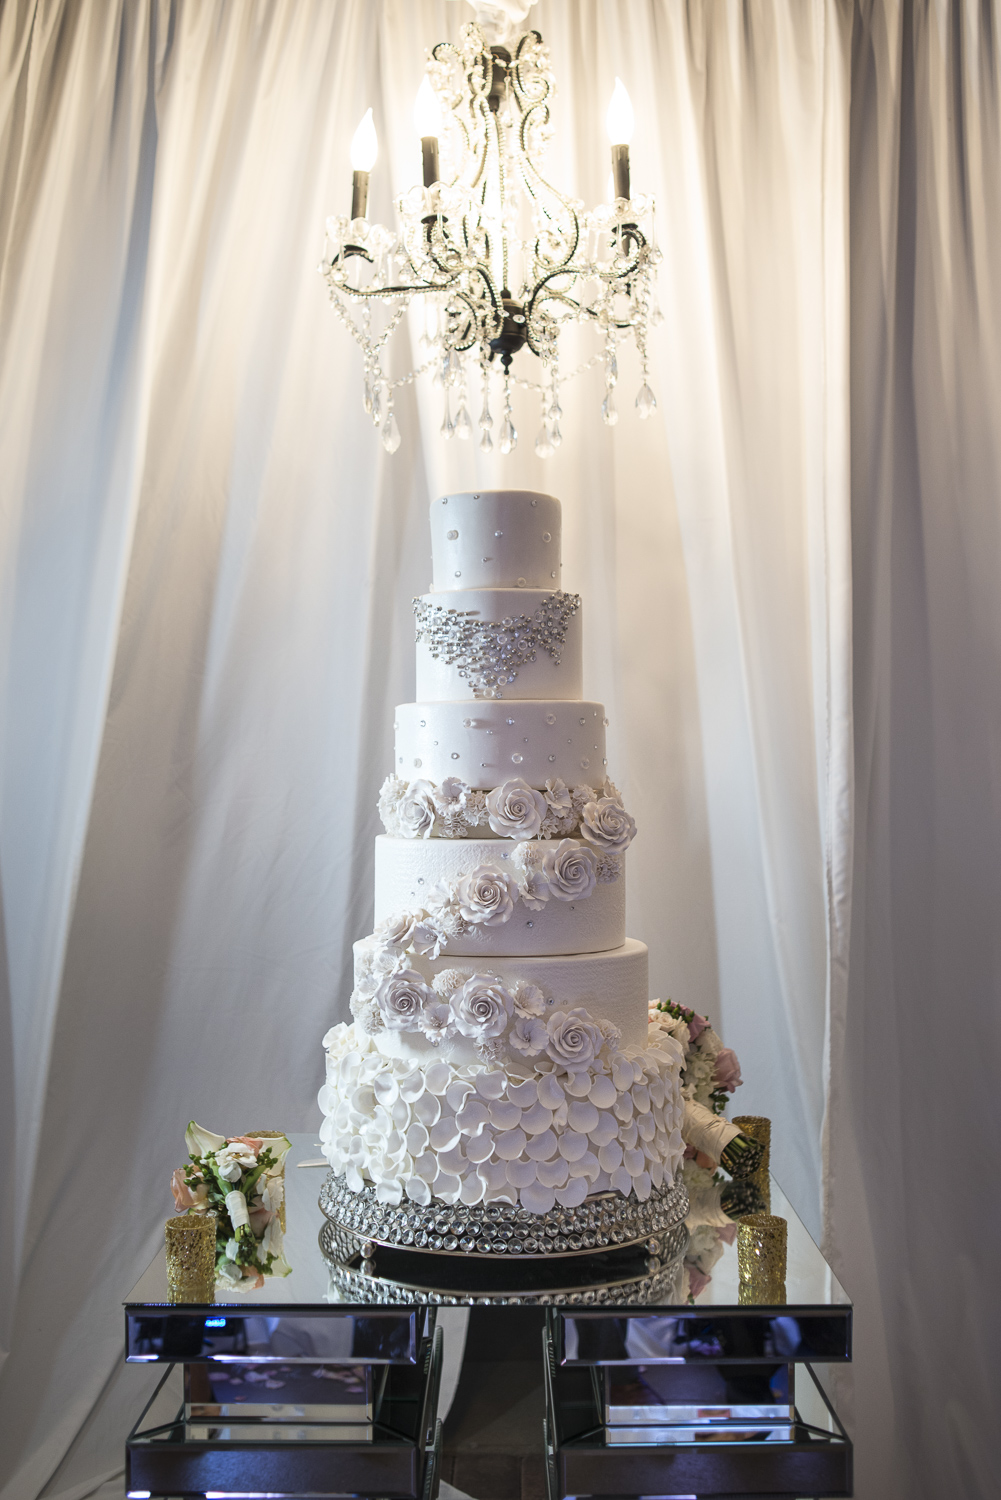 Jess and Juan's stunning six tiered cake is the first that I have ever designed myself.  The crystal pattern on the top echo the detail of her necklace, the roses call to mind her bouquet, and the petals below pick up the softness from the bottom of her dress.  The team at Mandarin Oriental took my rough sketch and turned out a masterpiece!  Photo by   AltF Photography  .